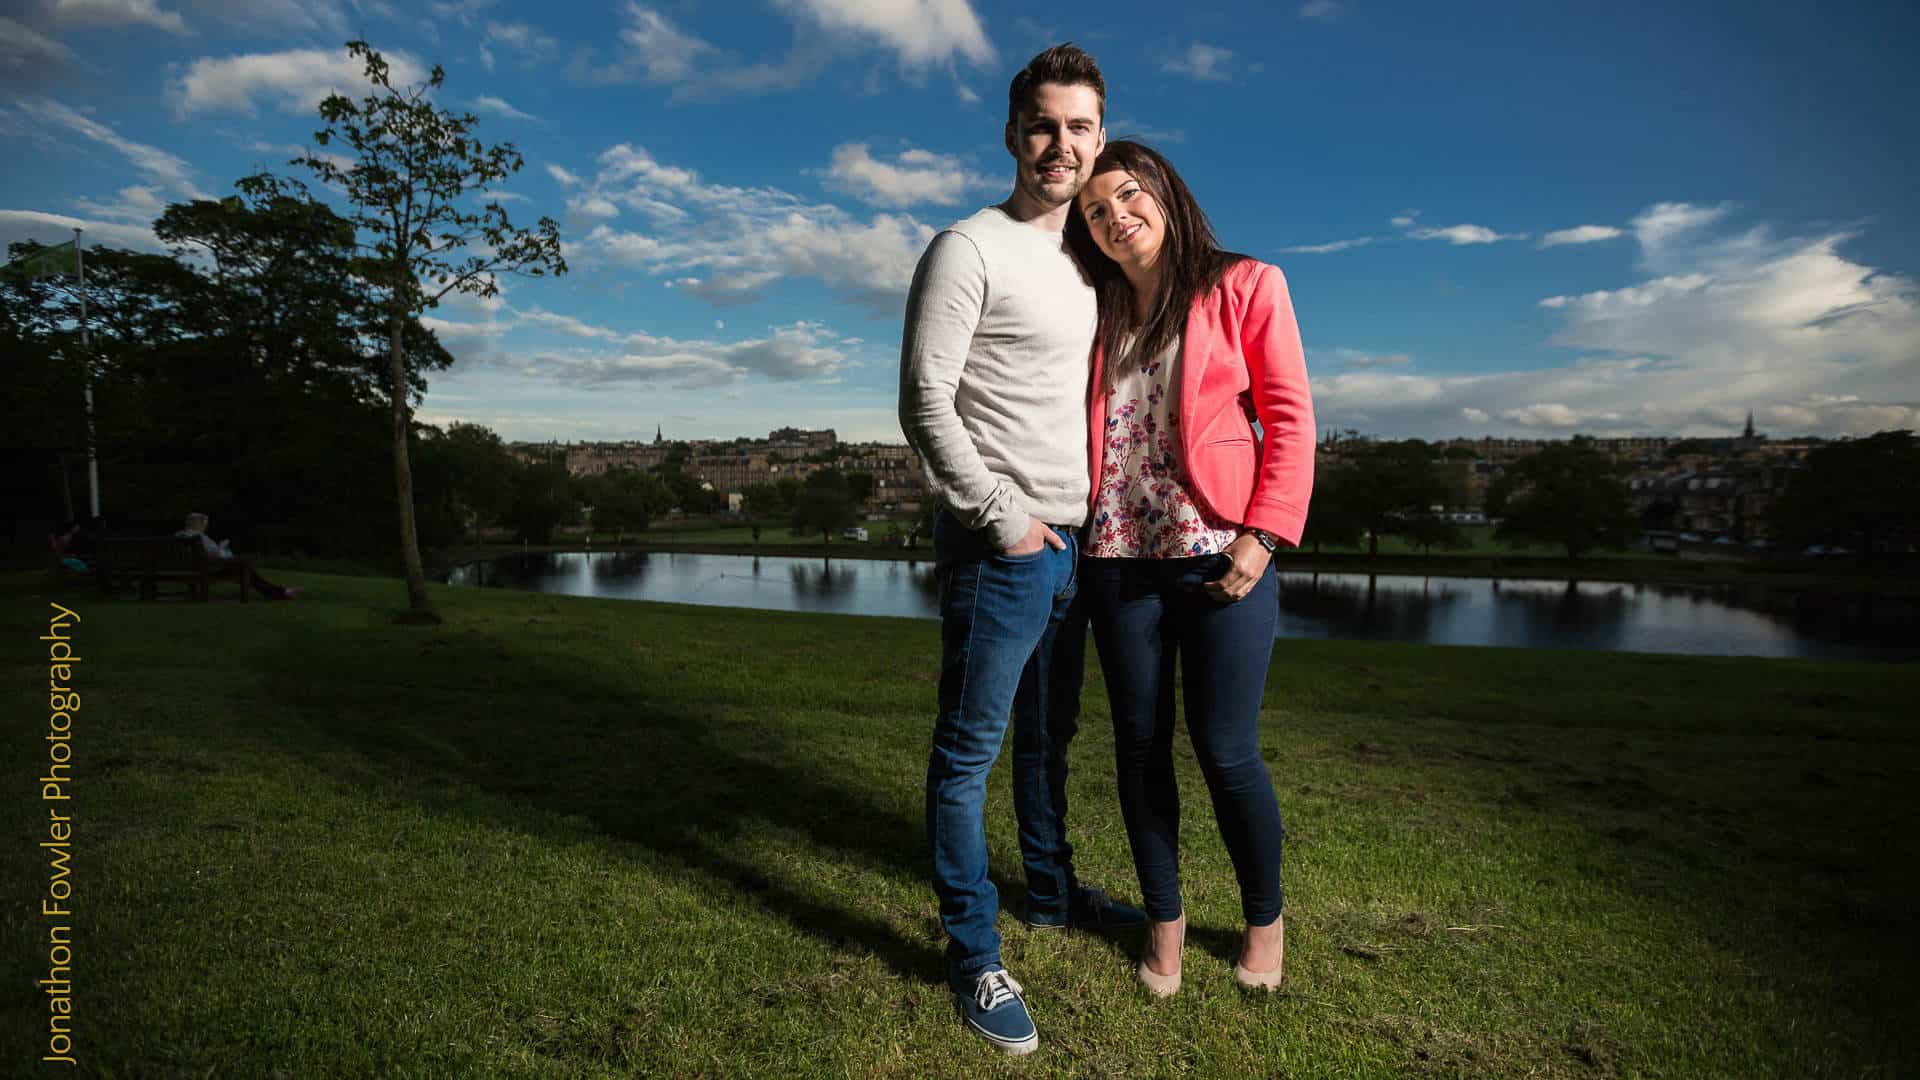 engagement photo shoot at Inverleith Park